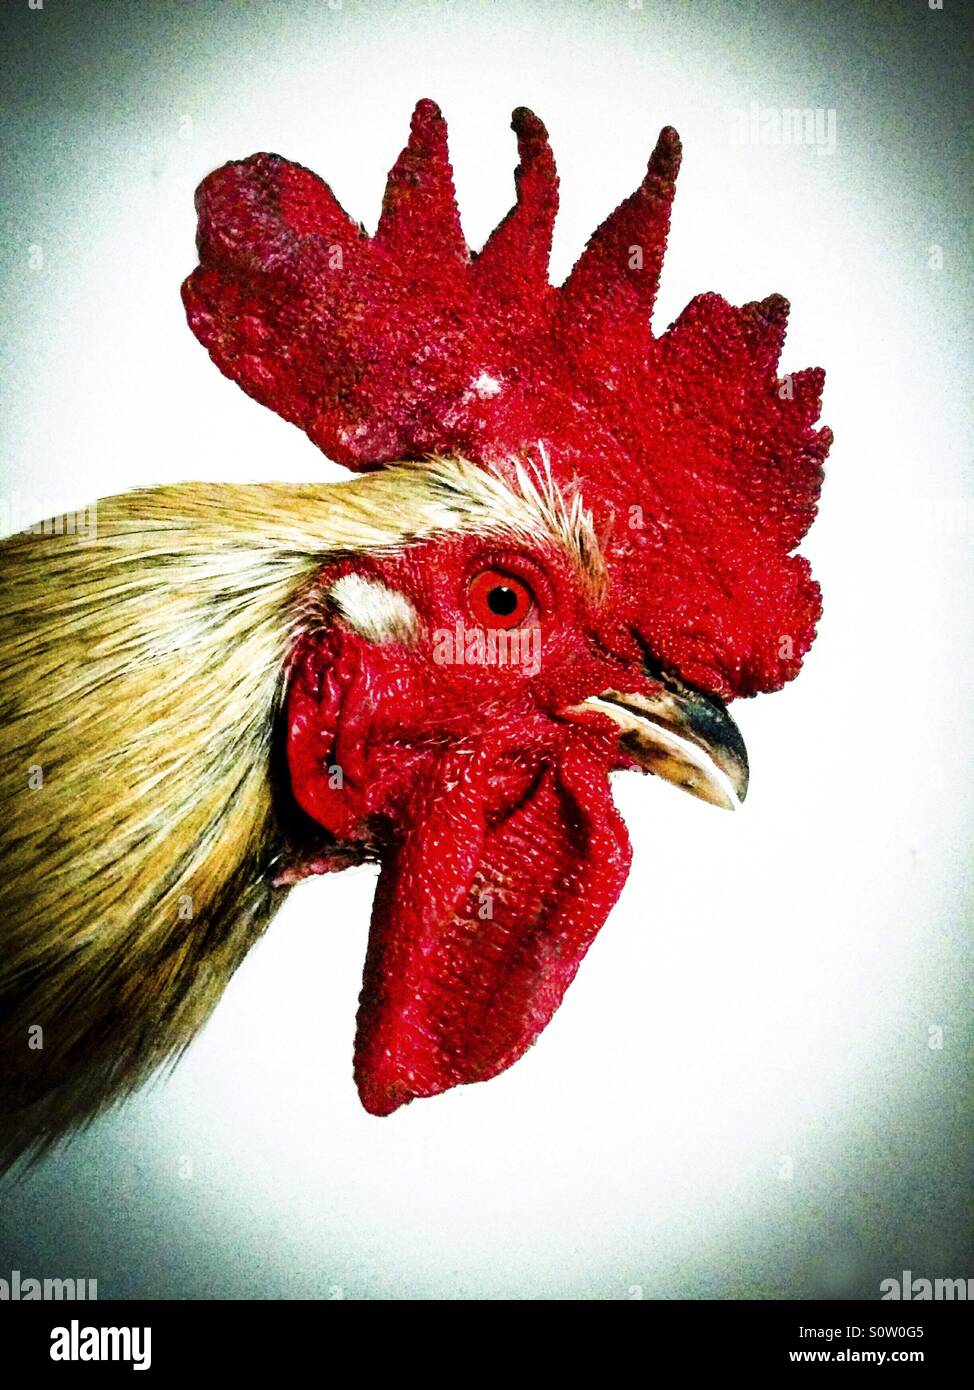 Rooster. - Stock Image